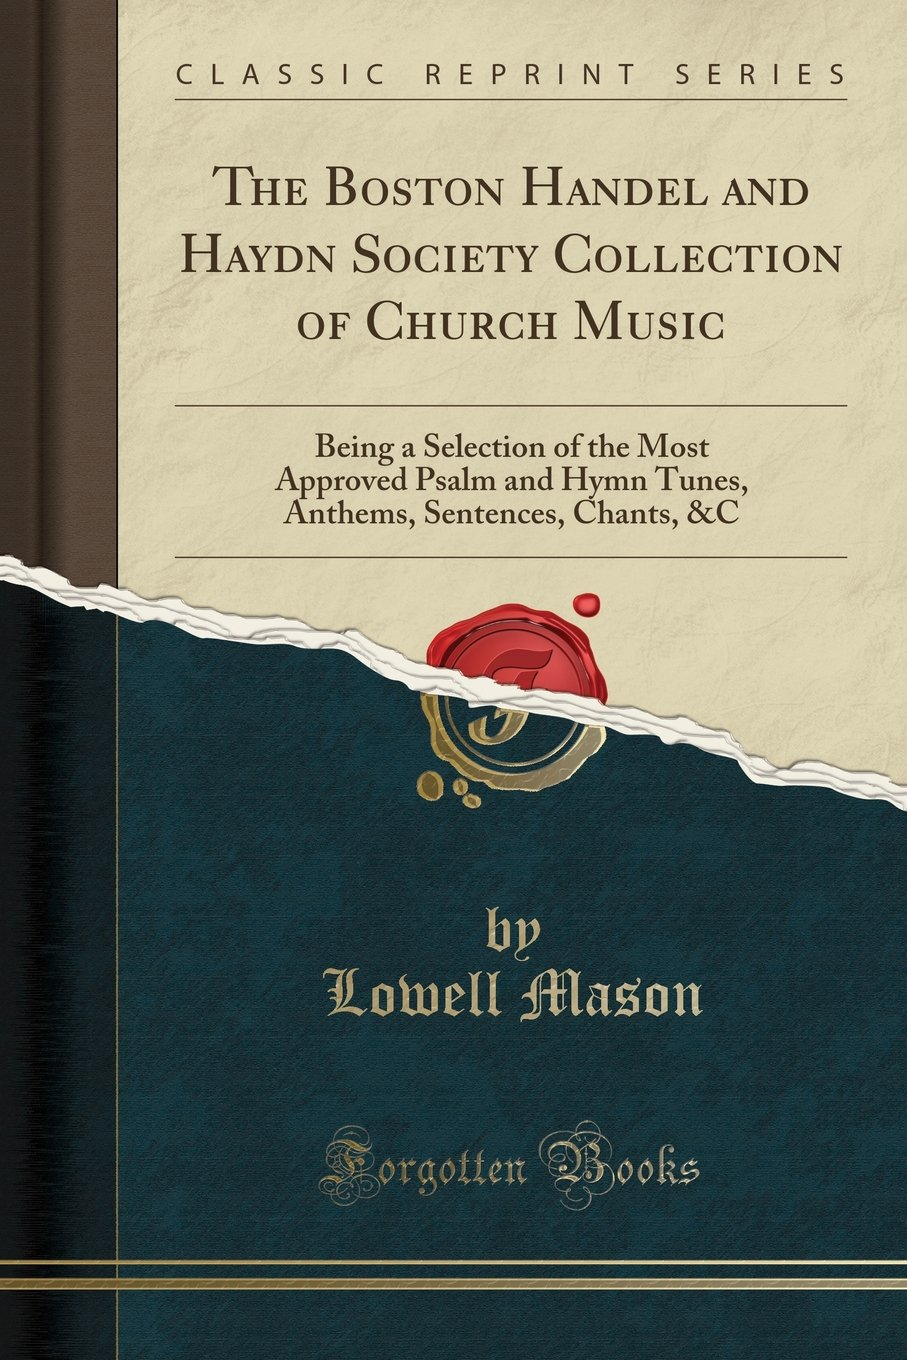 The Boston Handel and Haydn Society Collection of Church Music: Being a Selection of the Most Approved Psalm and Hymn Tunes, Anthems, Sentences, Chants, &C (Classic Reprint) ebook